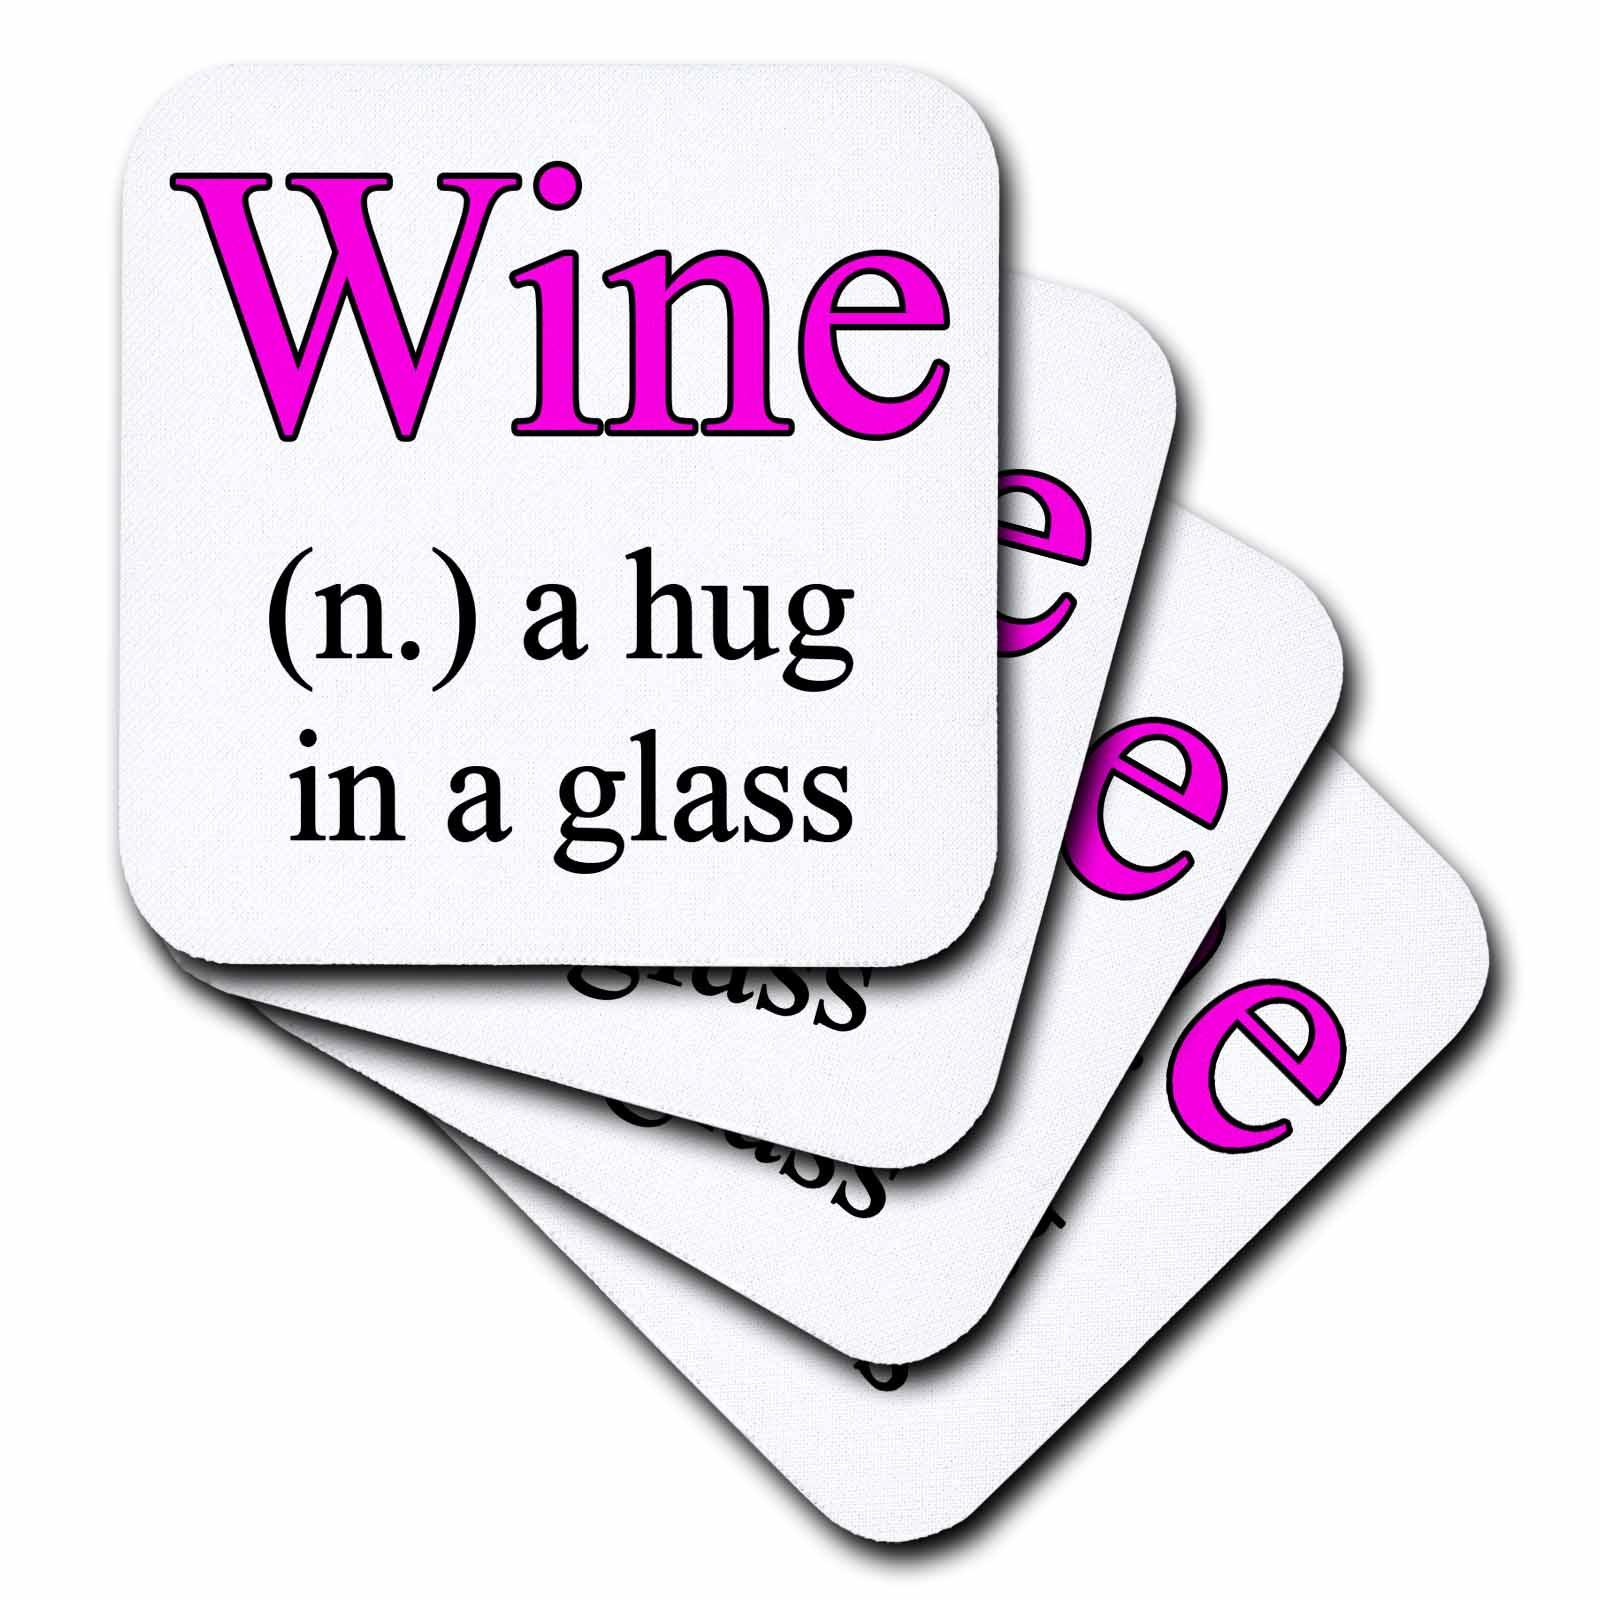 3dRose Wine a hug in a glass, Pink, Ceramic Tile Coasters, set of 4